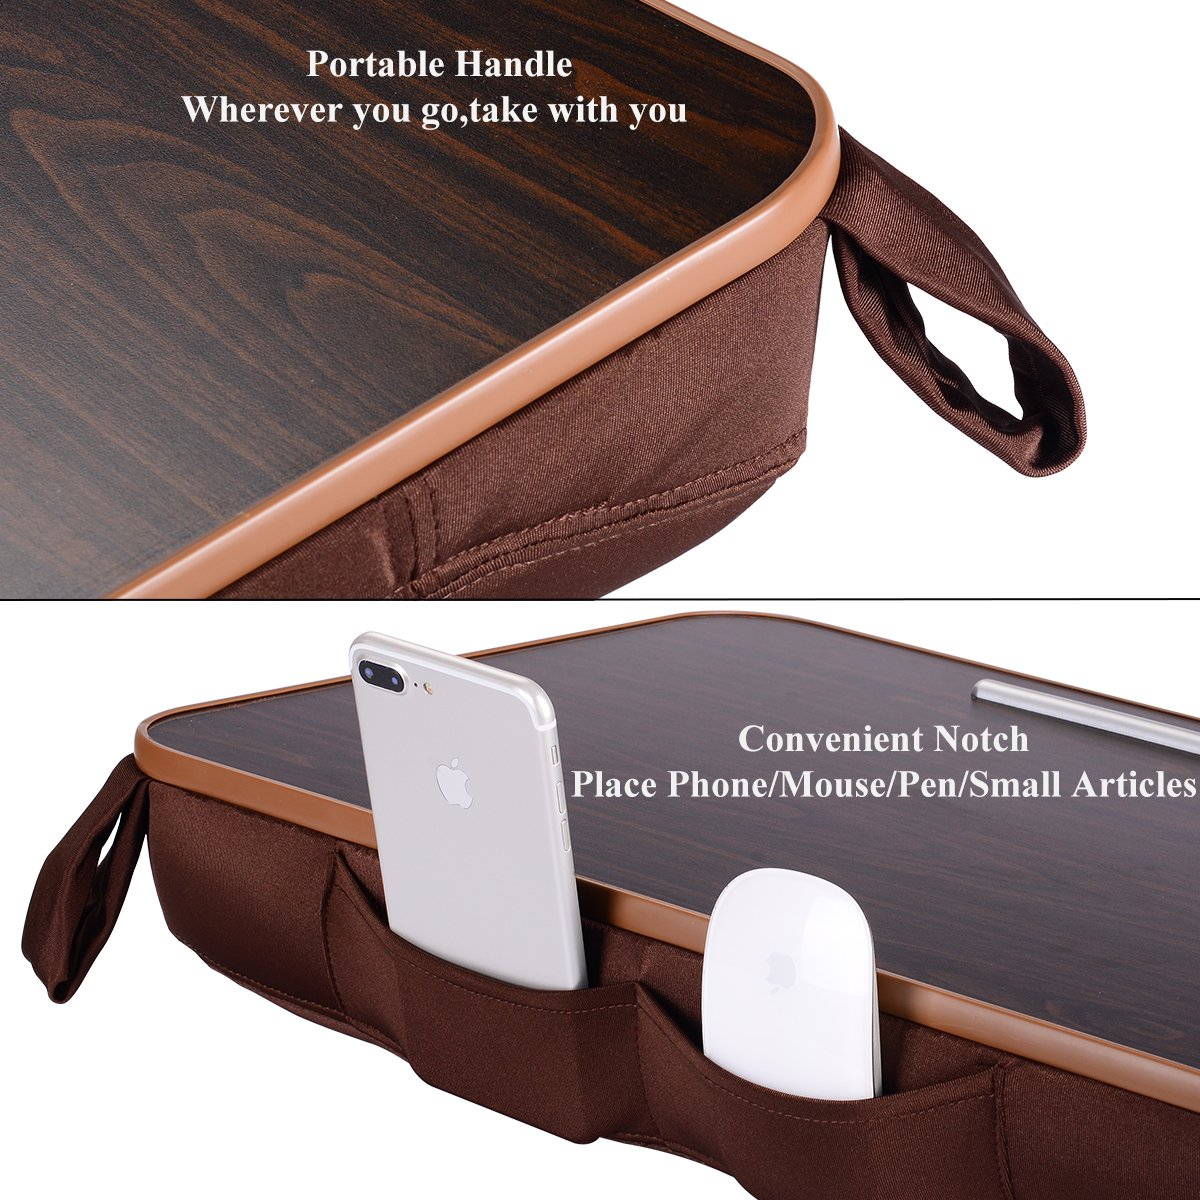 Laptop Desk Portable Nnewvante Multi-function Cushion Computer Lap Stand, Writing Reading Knee Pad, Macbook iPad Tablet Fits up to 18in, Portable Hand Pillow, Square Walnut